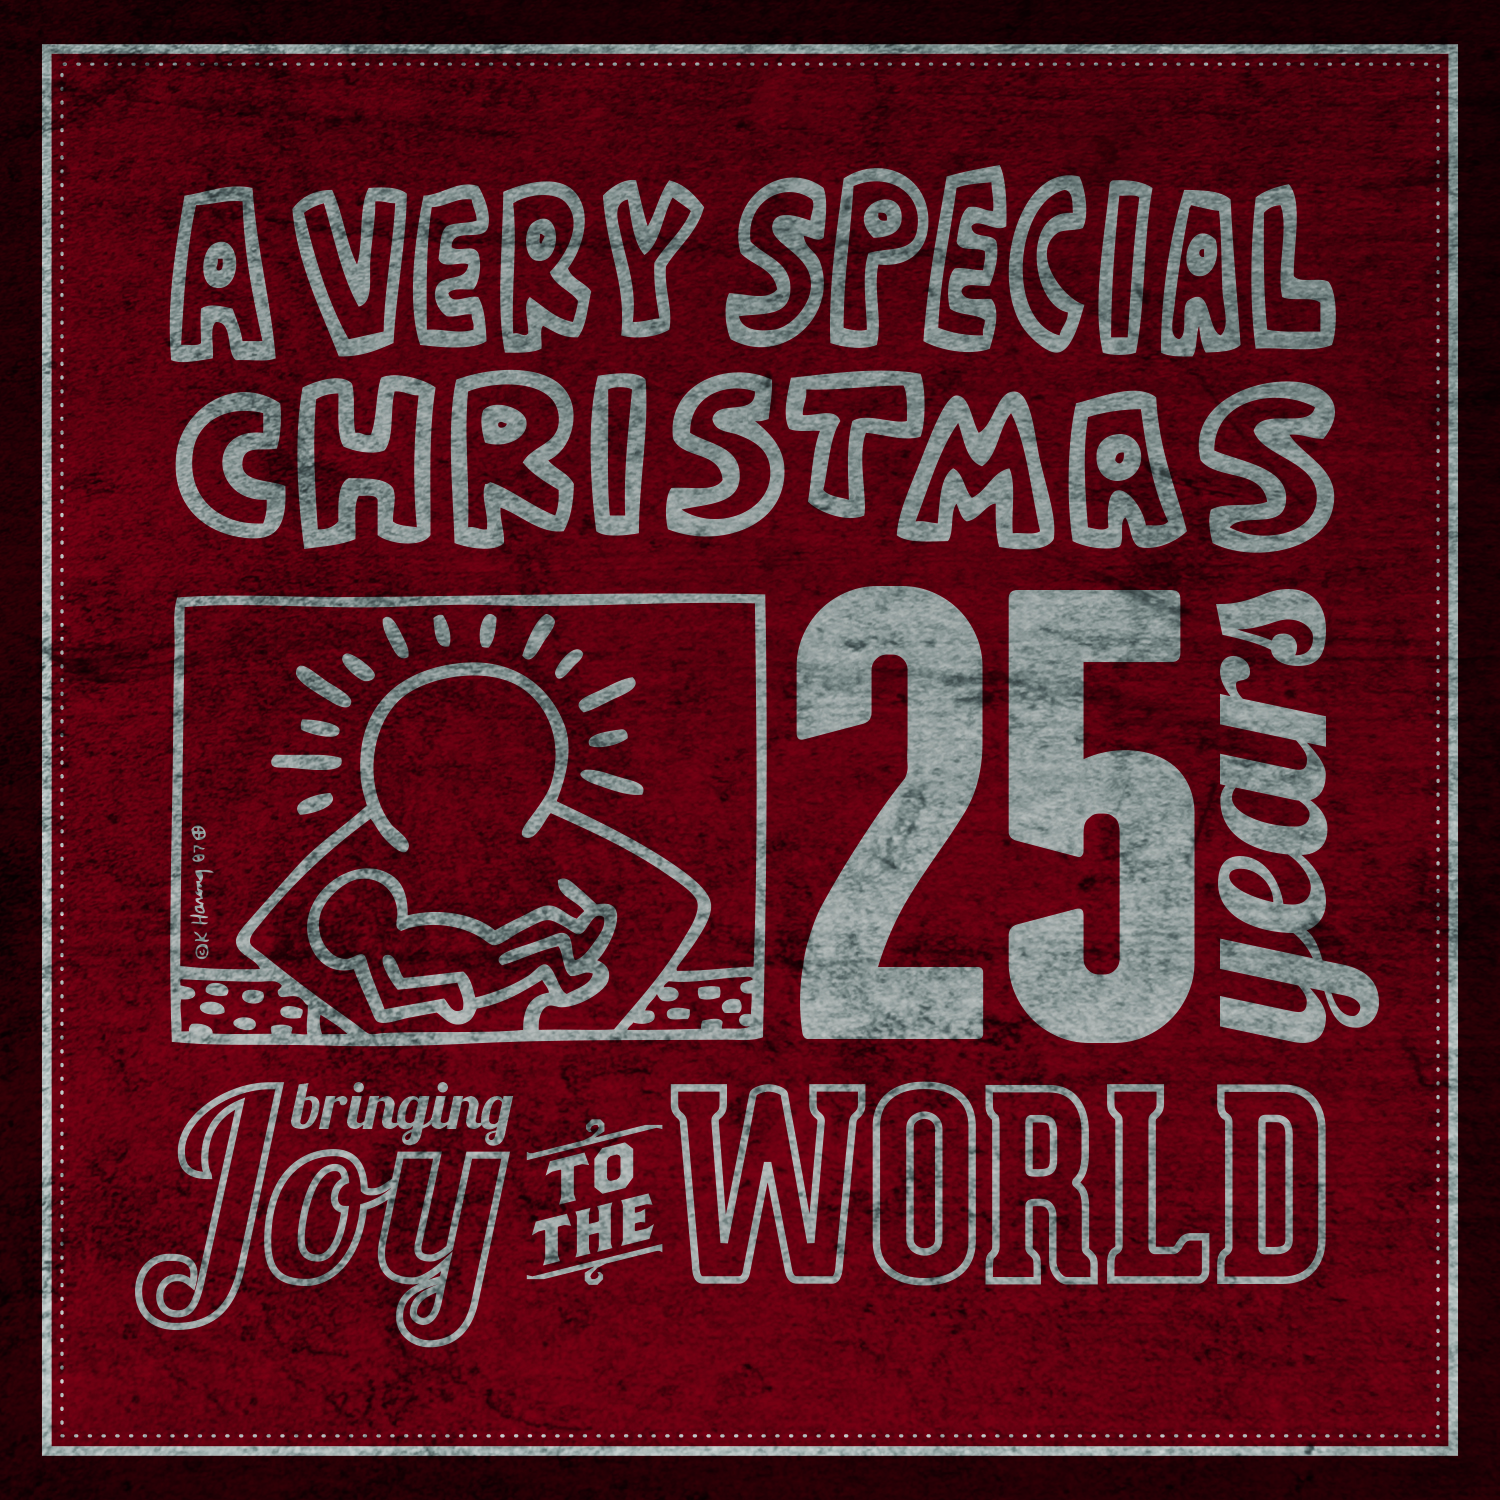 a very special christmas 25th anniversary album artwork jpg